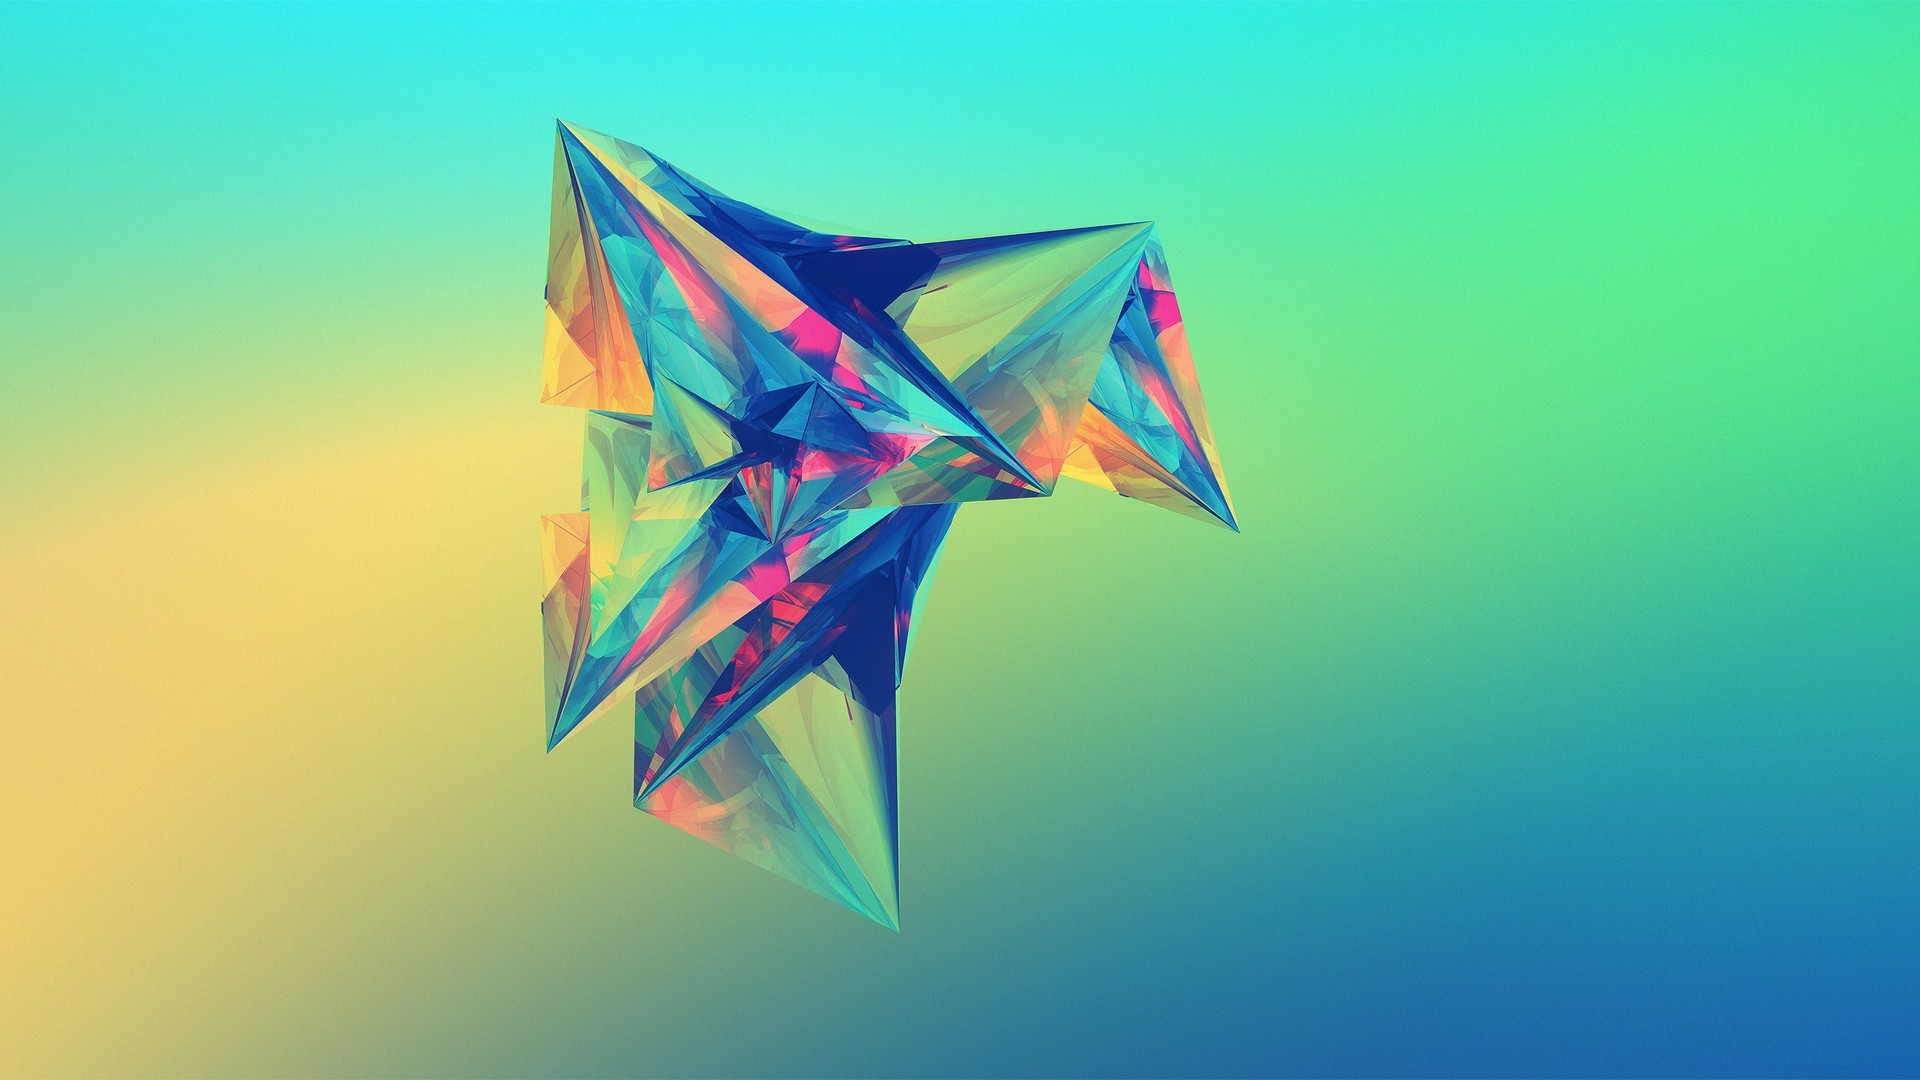 Polygon wallpaper 1920x1080 74226